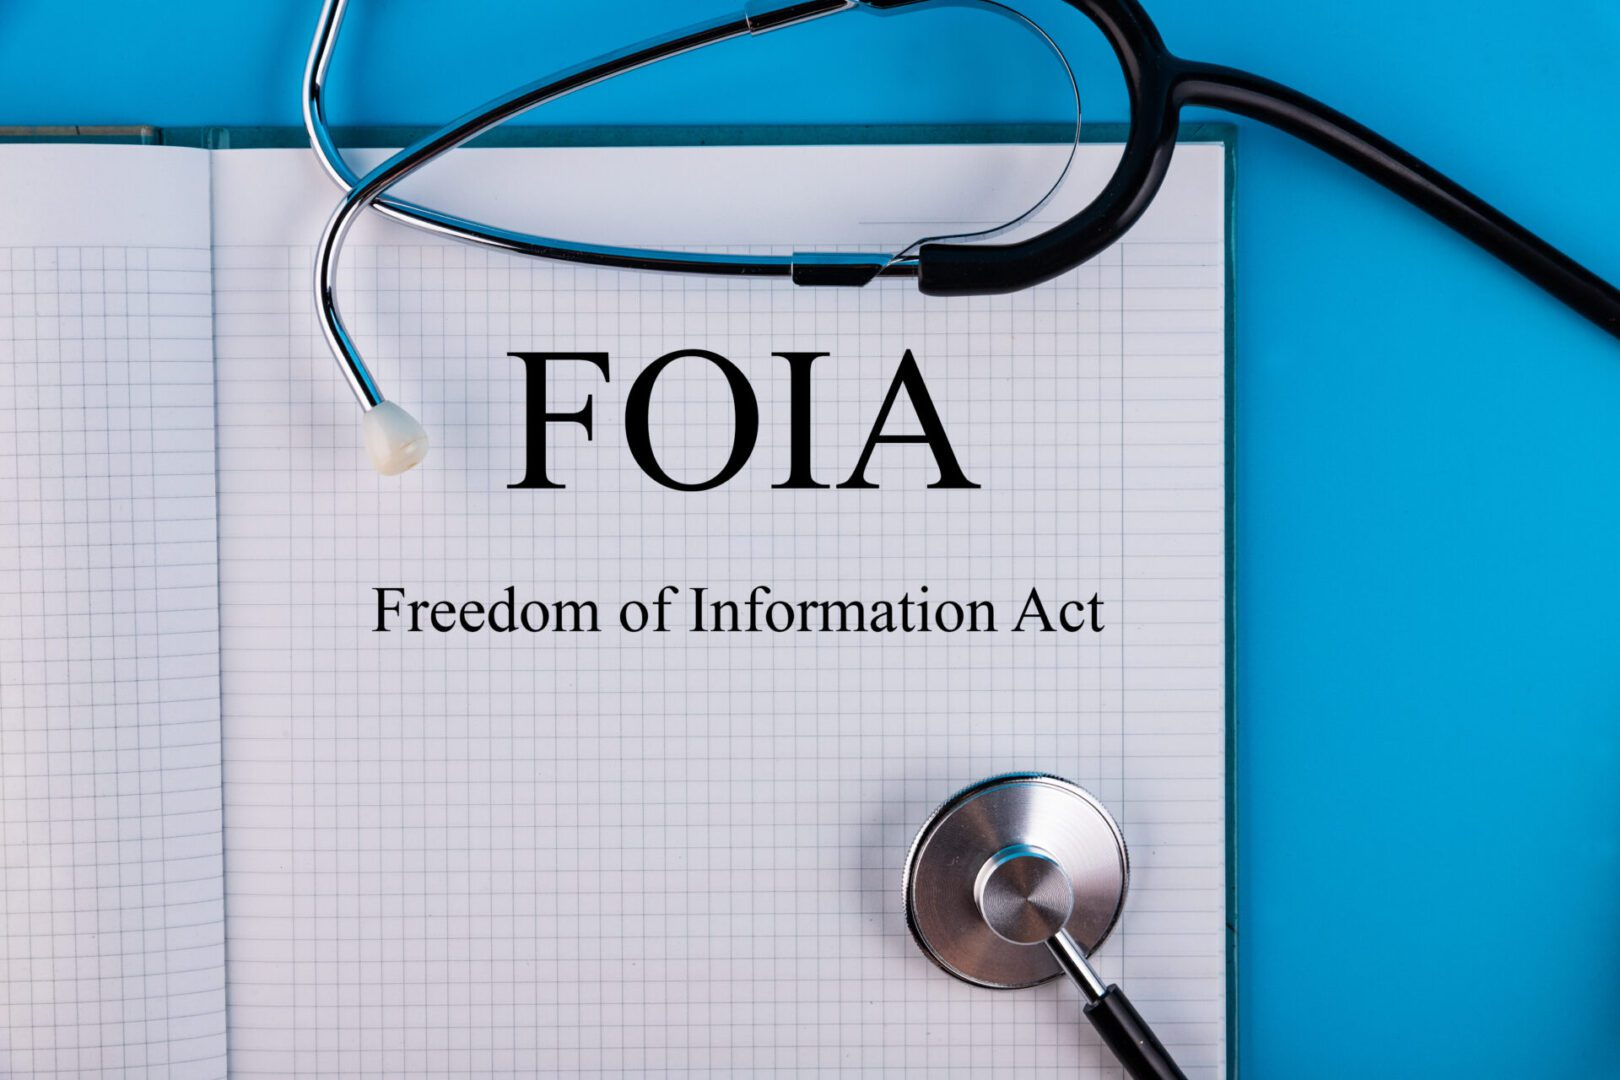 Notebook,With,The,Freedom,Of,Information,Act,Foia,On,A